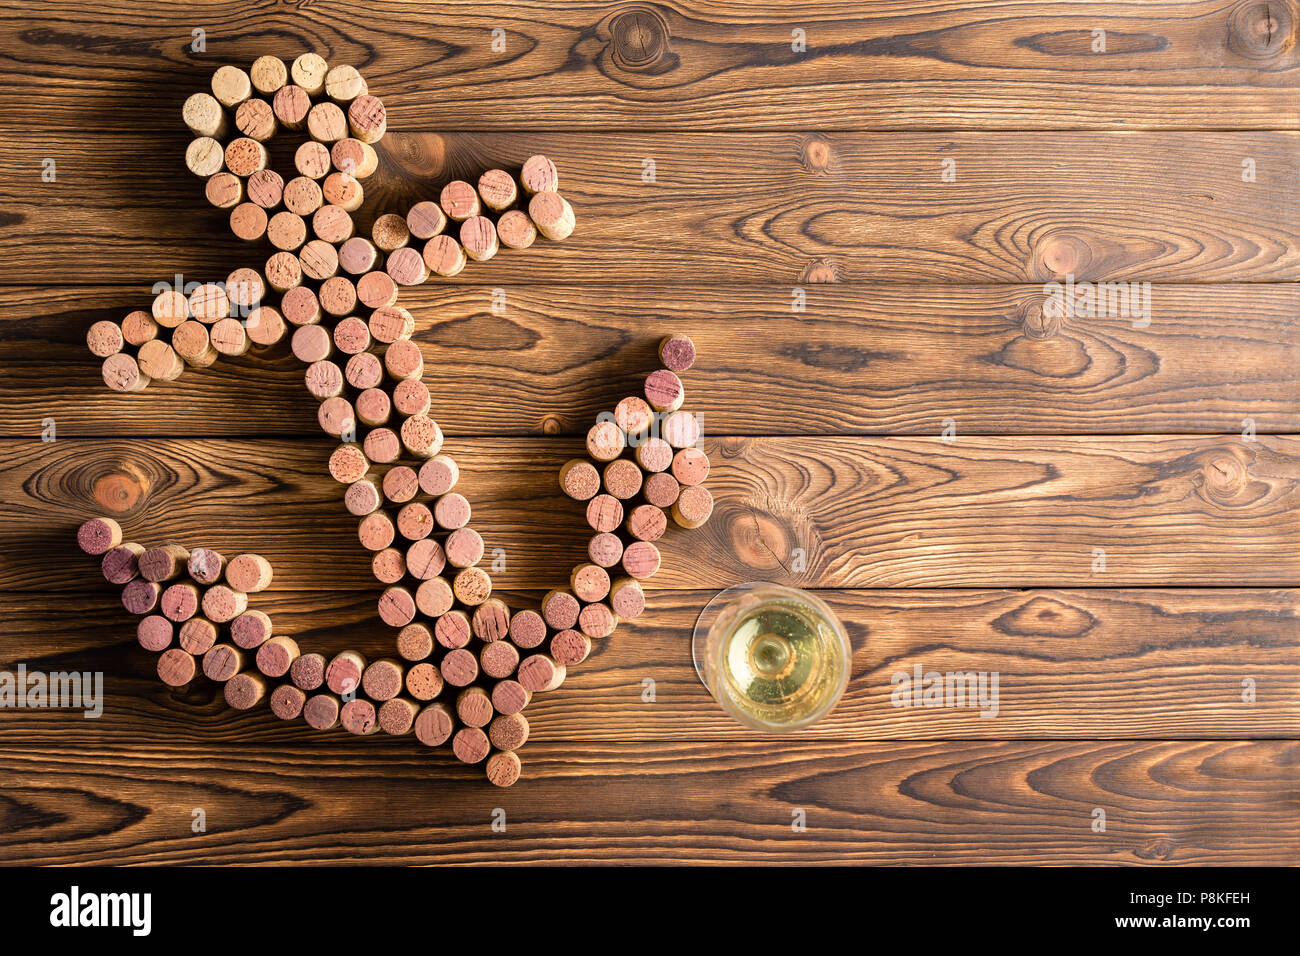 Creative Boat Anchor Design Formed Of Used Wine Corks On A